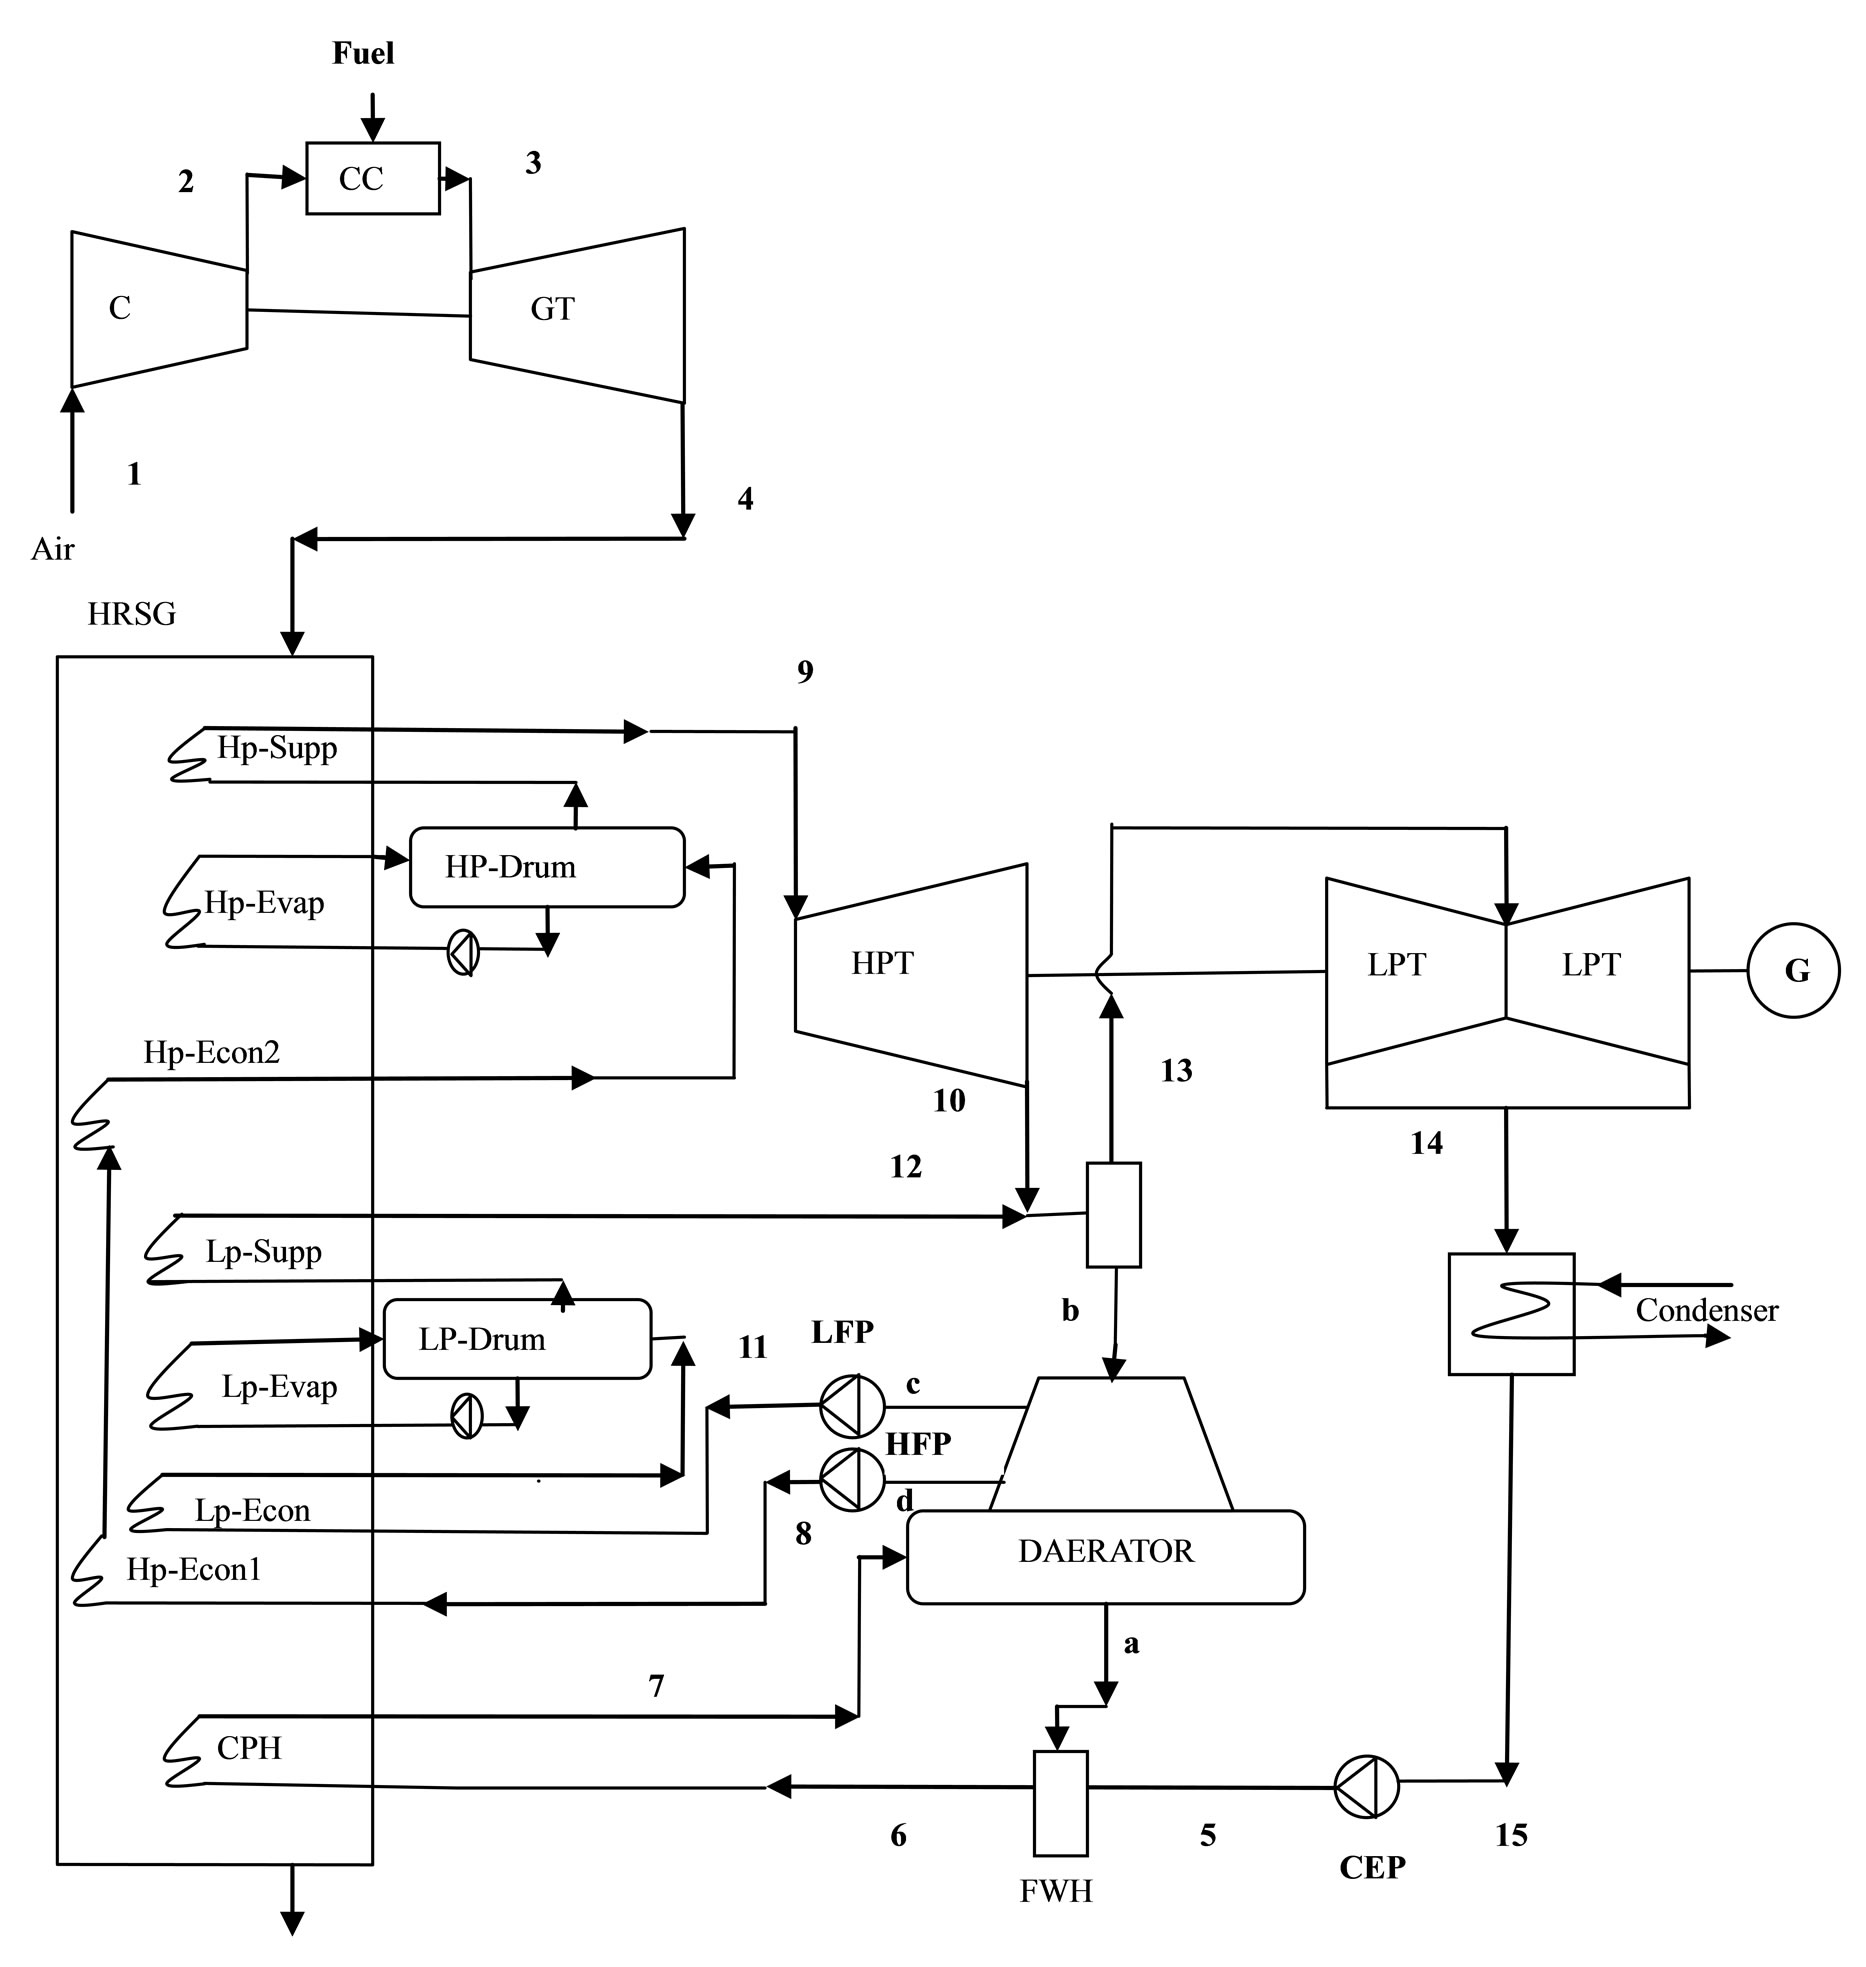 schematic diagram of steam power plant subaru impreza wiring oil fired overview  the